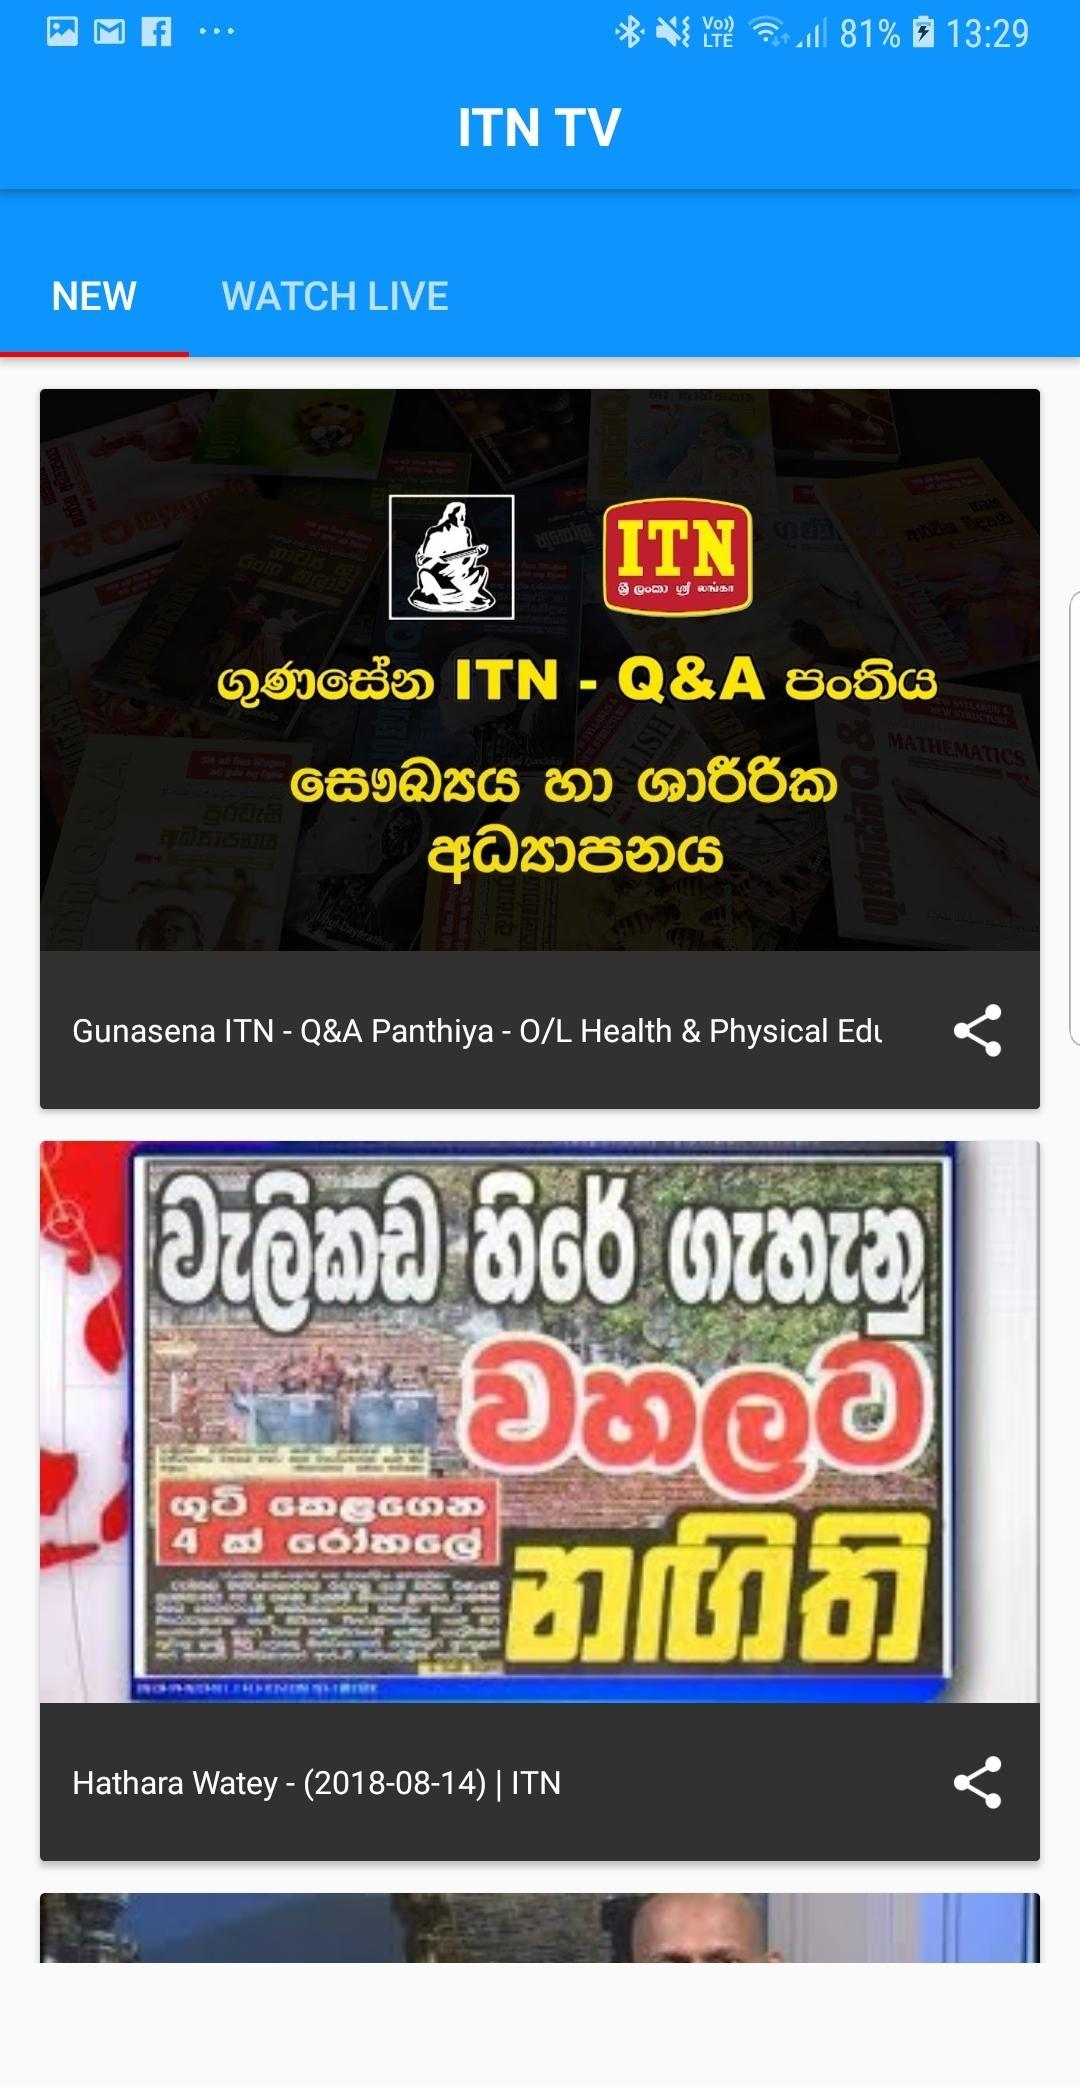 ITN TV - Sri Lanka for Android - APK Download